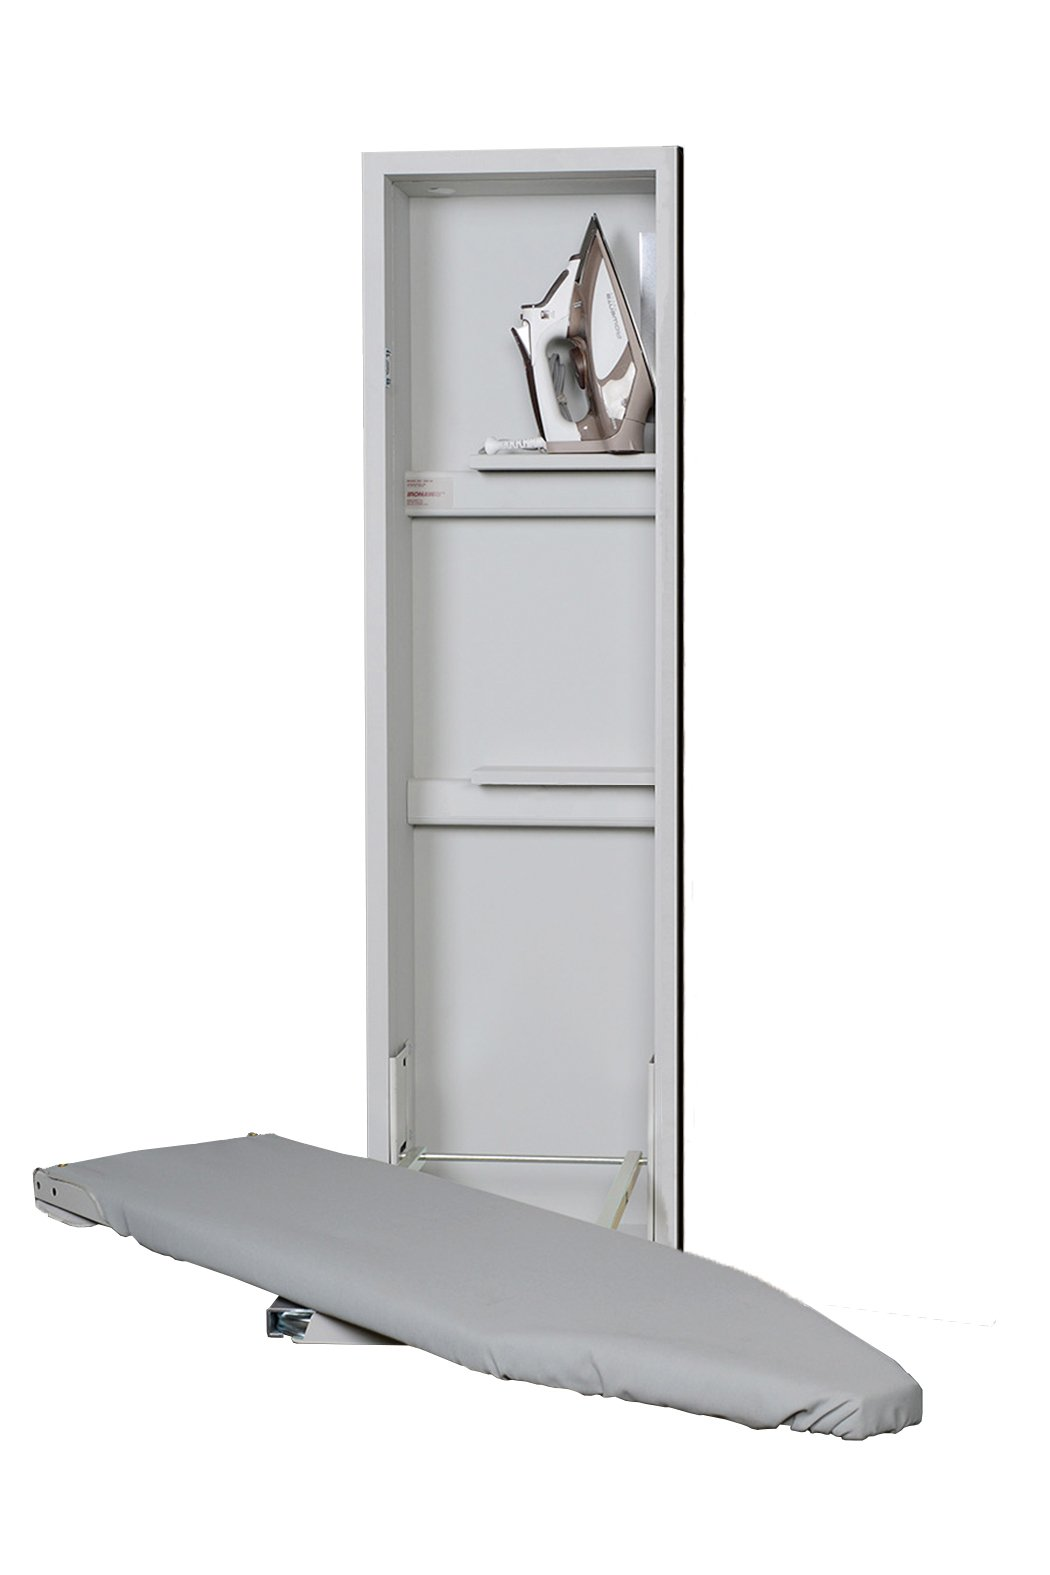 Iron A Way ANE-42 Deluxe Non-Electric Swivel Ironing Center, No Door